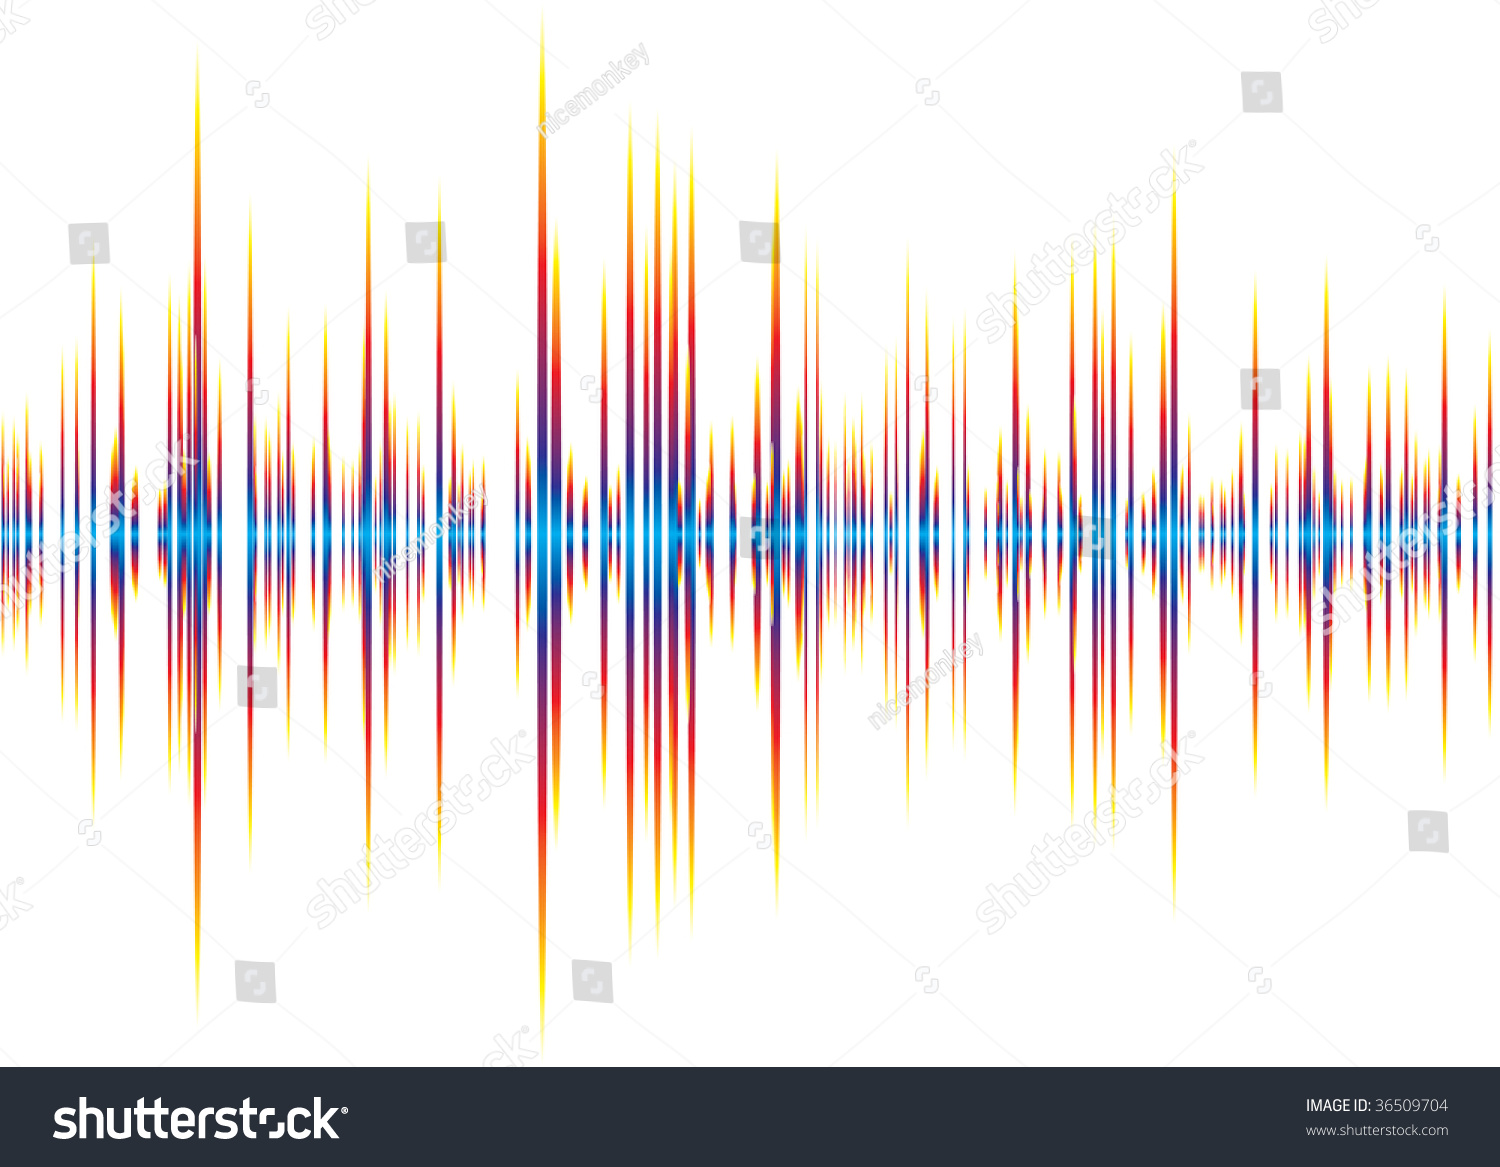 Abstract Music Inspired Graphic Equalizer Background Stock Vector